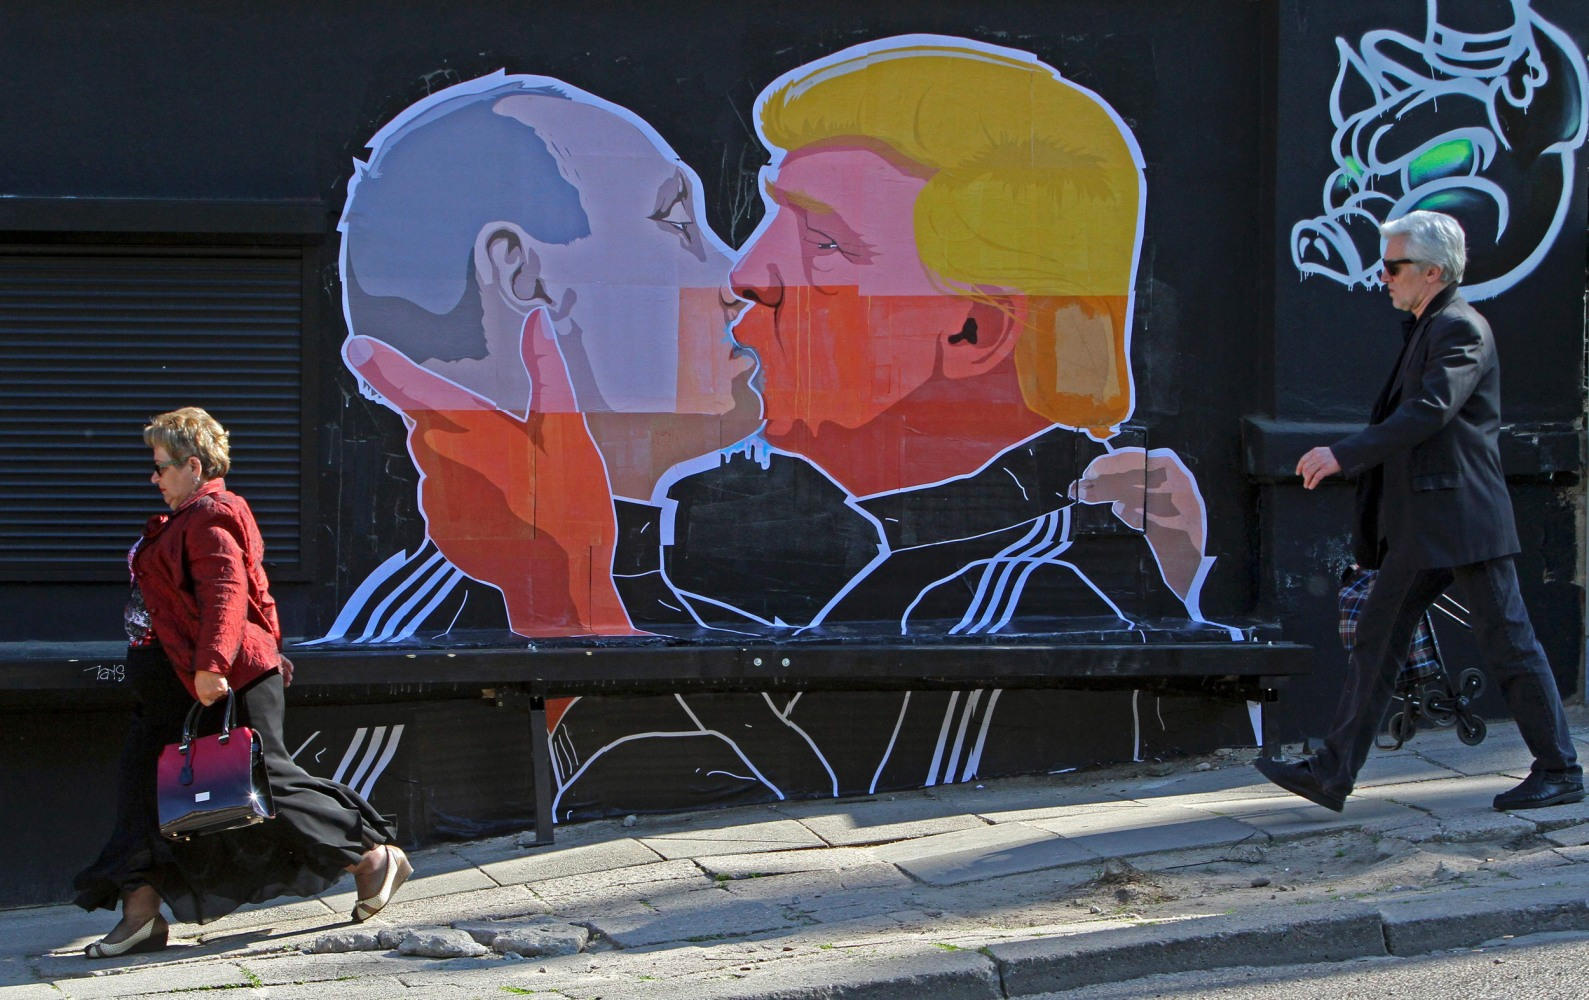 http://media1.s-nbcnews.com/j/newscms/2016_31/1648256/160801-trump-putin-kissing-mbe-445p_2243b5f340e83461b265385fa5005243.nbcnews-ux-2880-1000.jpg